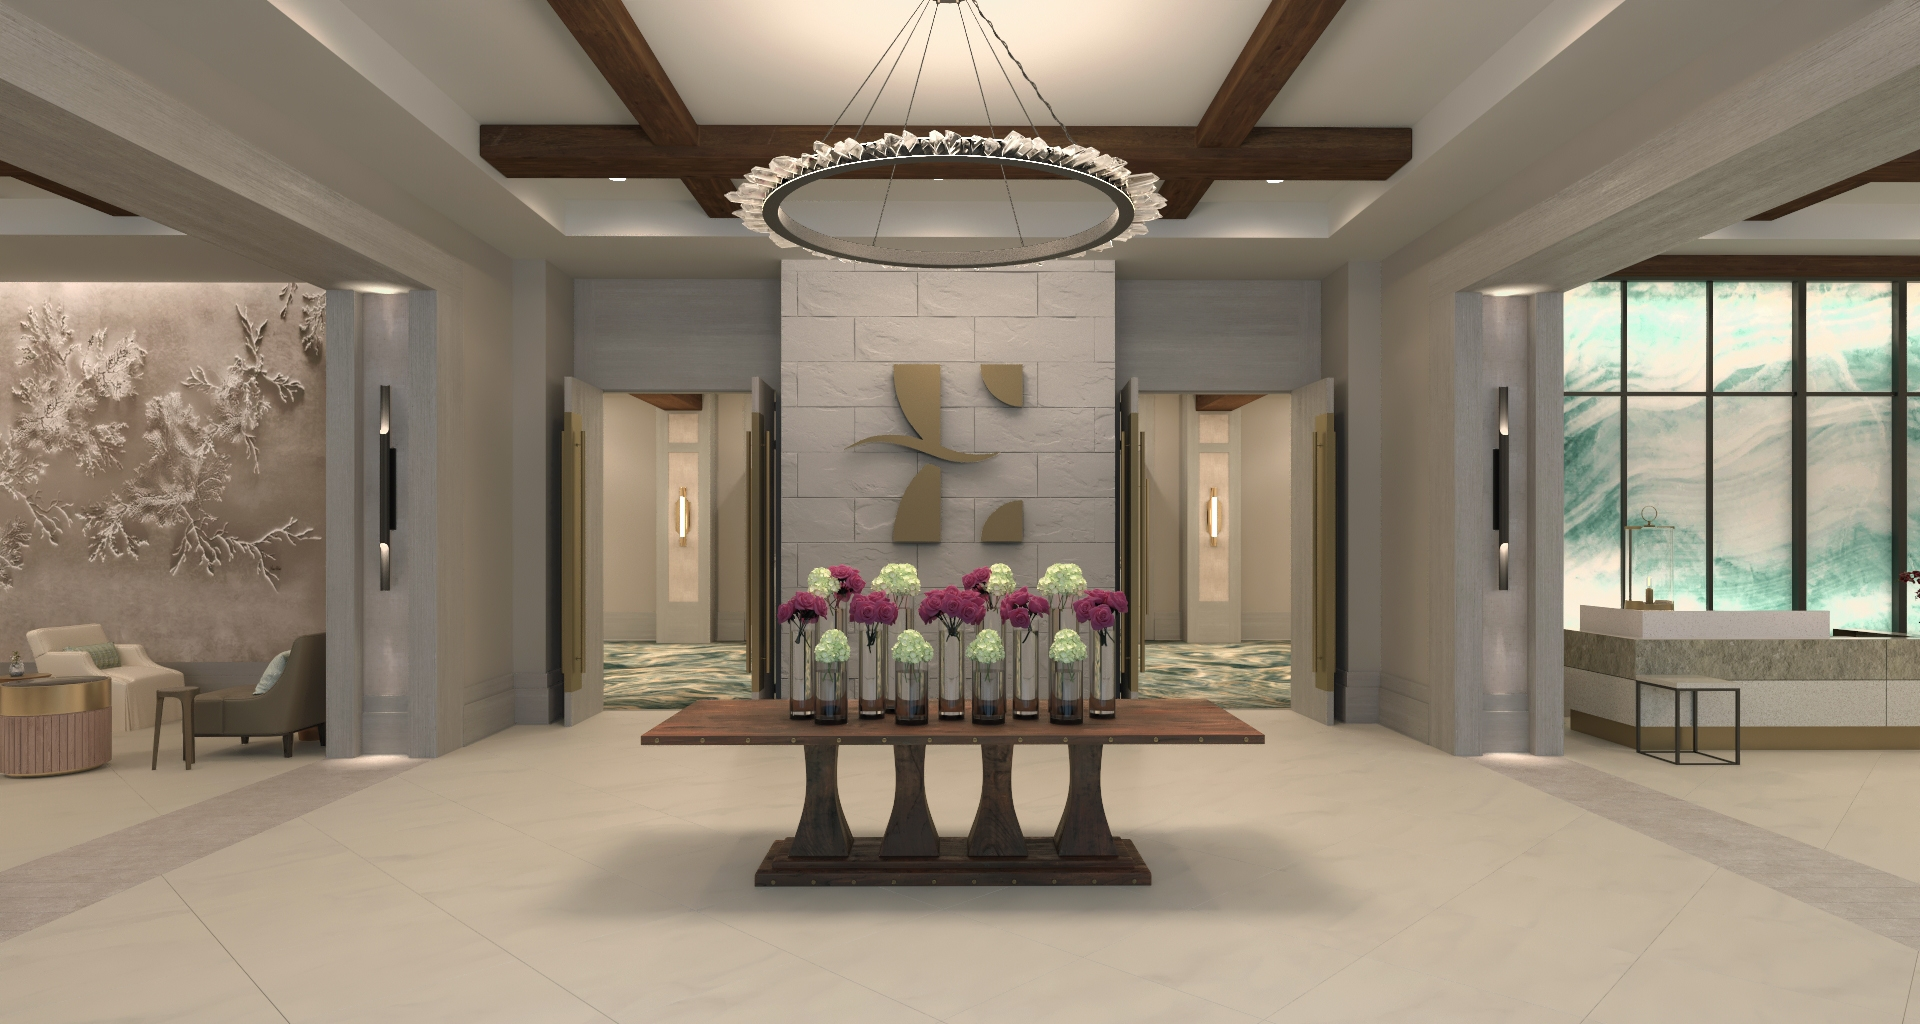 The main foyer at Hotel Effie